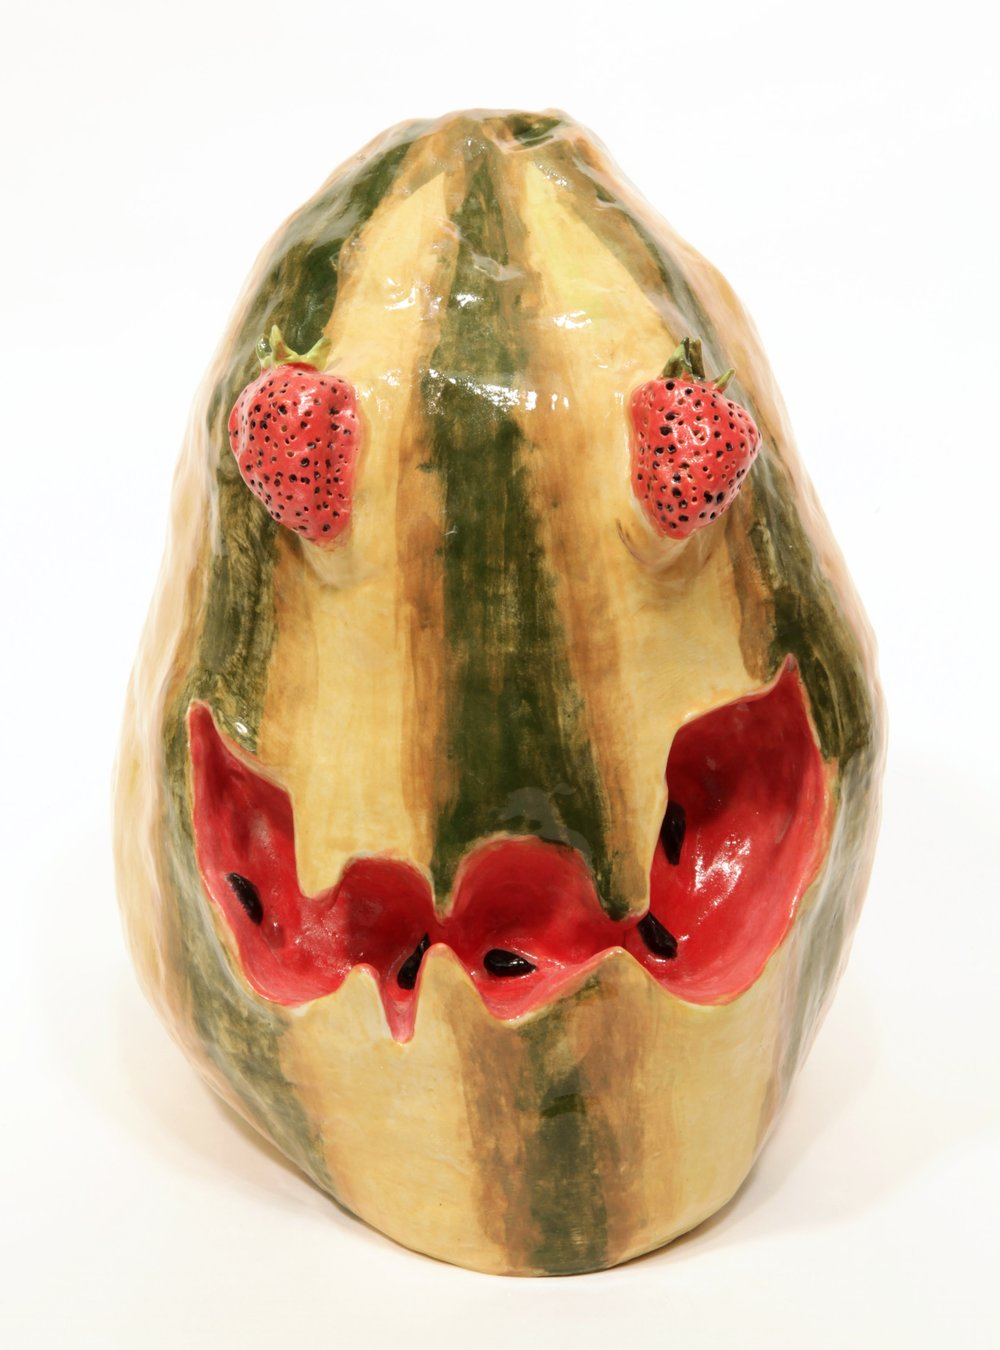 Valerie Hegarty,  Watermelon Head with Strawberry Eyes , 2016, glazed ceramics.